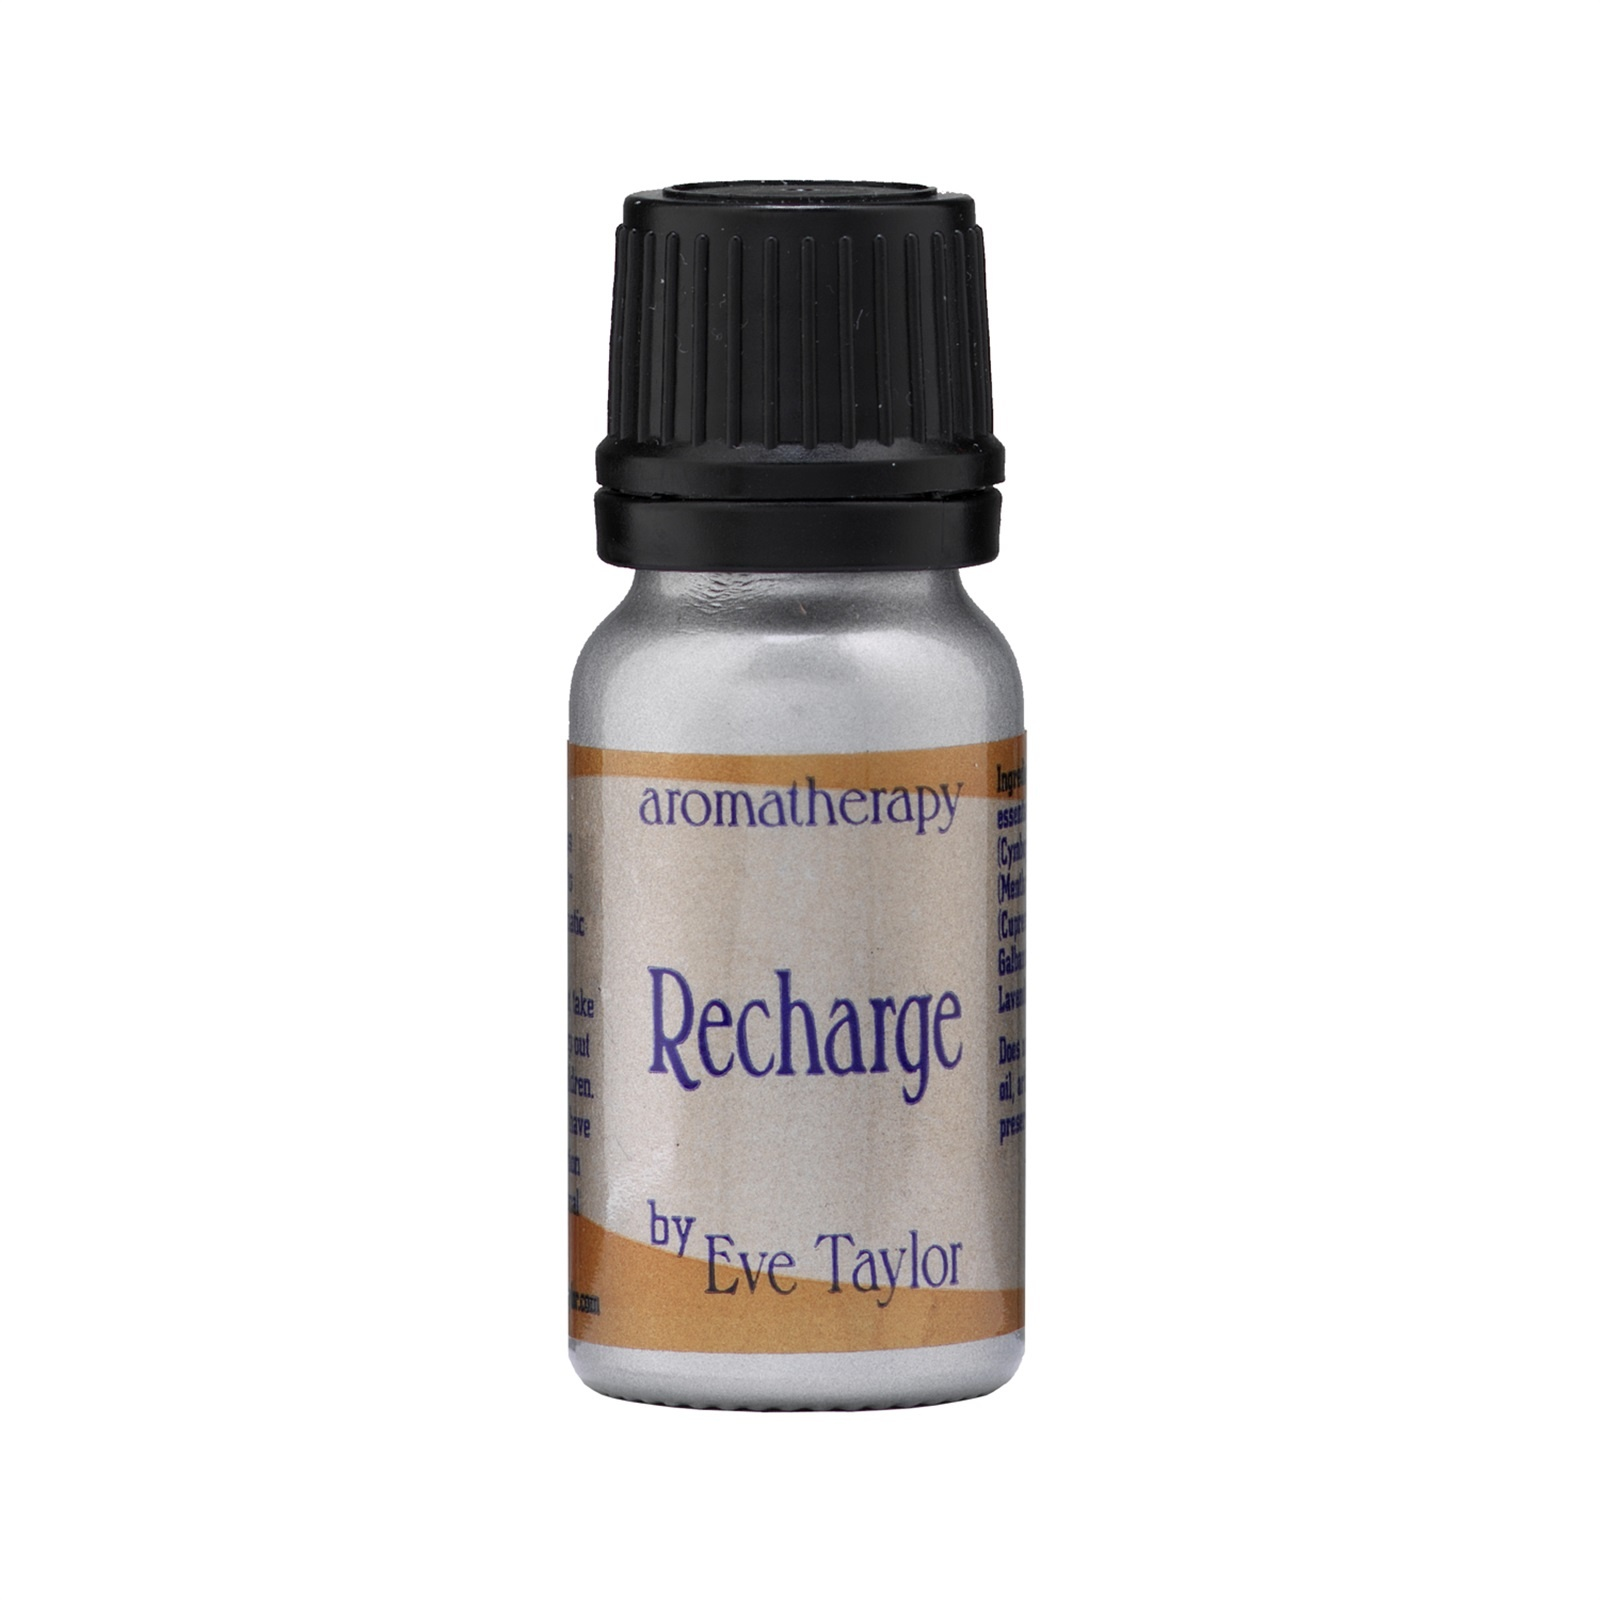 Eve Taylor Recharge Diffuser Blend